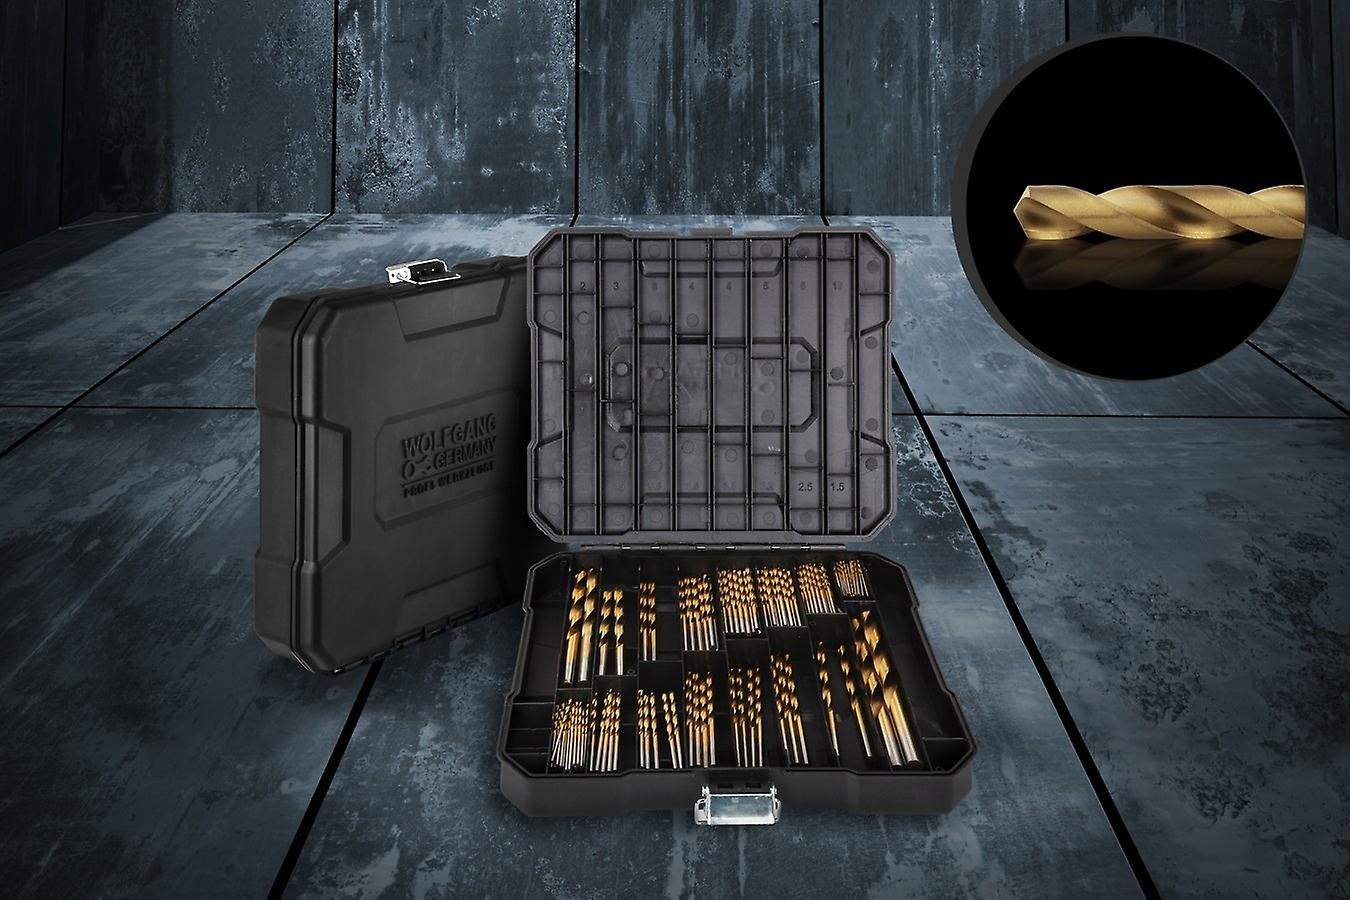 WOLFGANG 100 Parts Drill Set, Spiral Drill Set Metal with Case, HSS Titanium Coating DIN Type N, For Cordless Screwdriver, Drill, SDS-plus Drill Set, Drilling in Hard Plastic and Metal